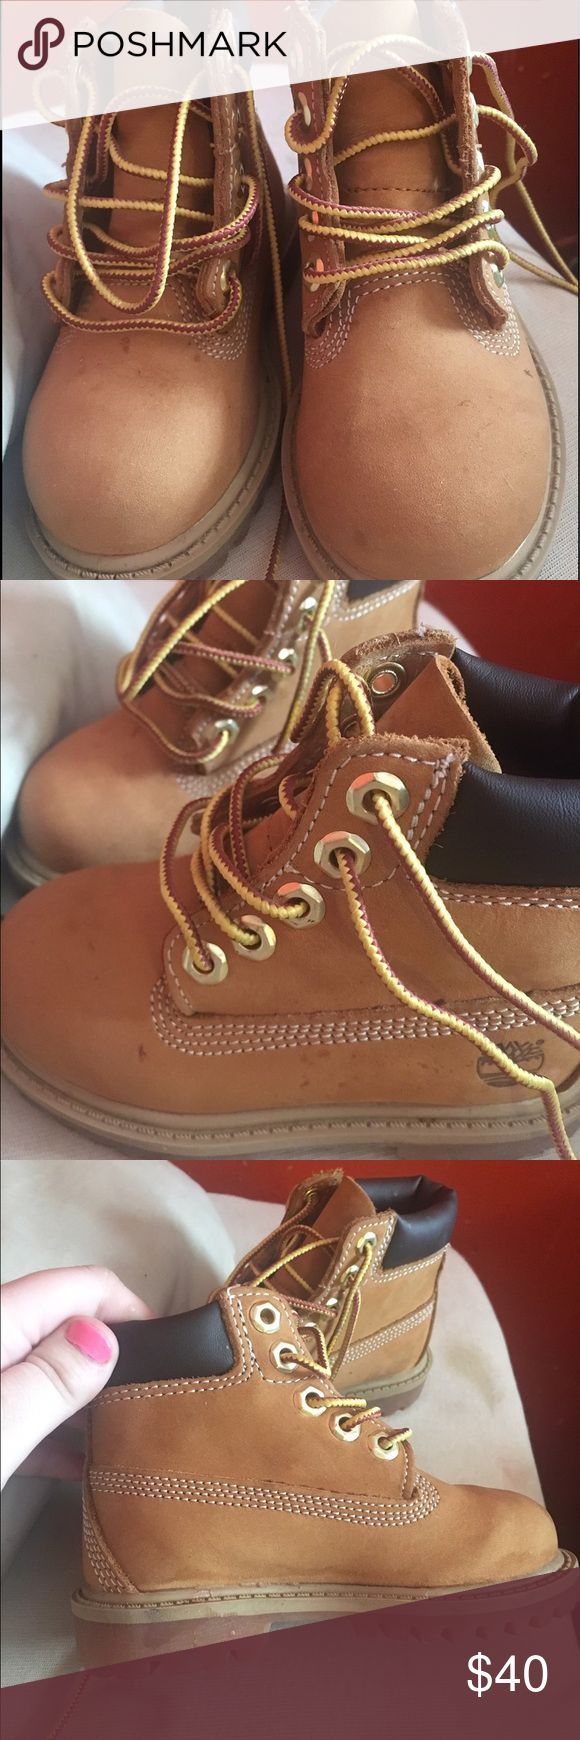 Timberland wheat Original timberland boot for toddler boys and girls, small stains unnoticeable when worn. No creases 9/10 condition Timberland Shoes Boots